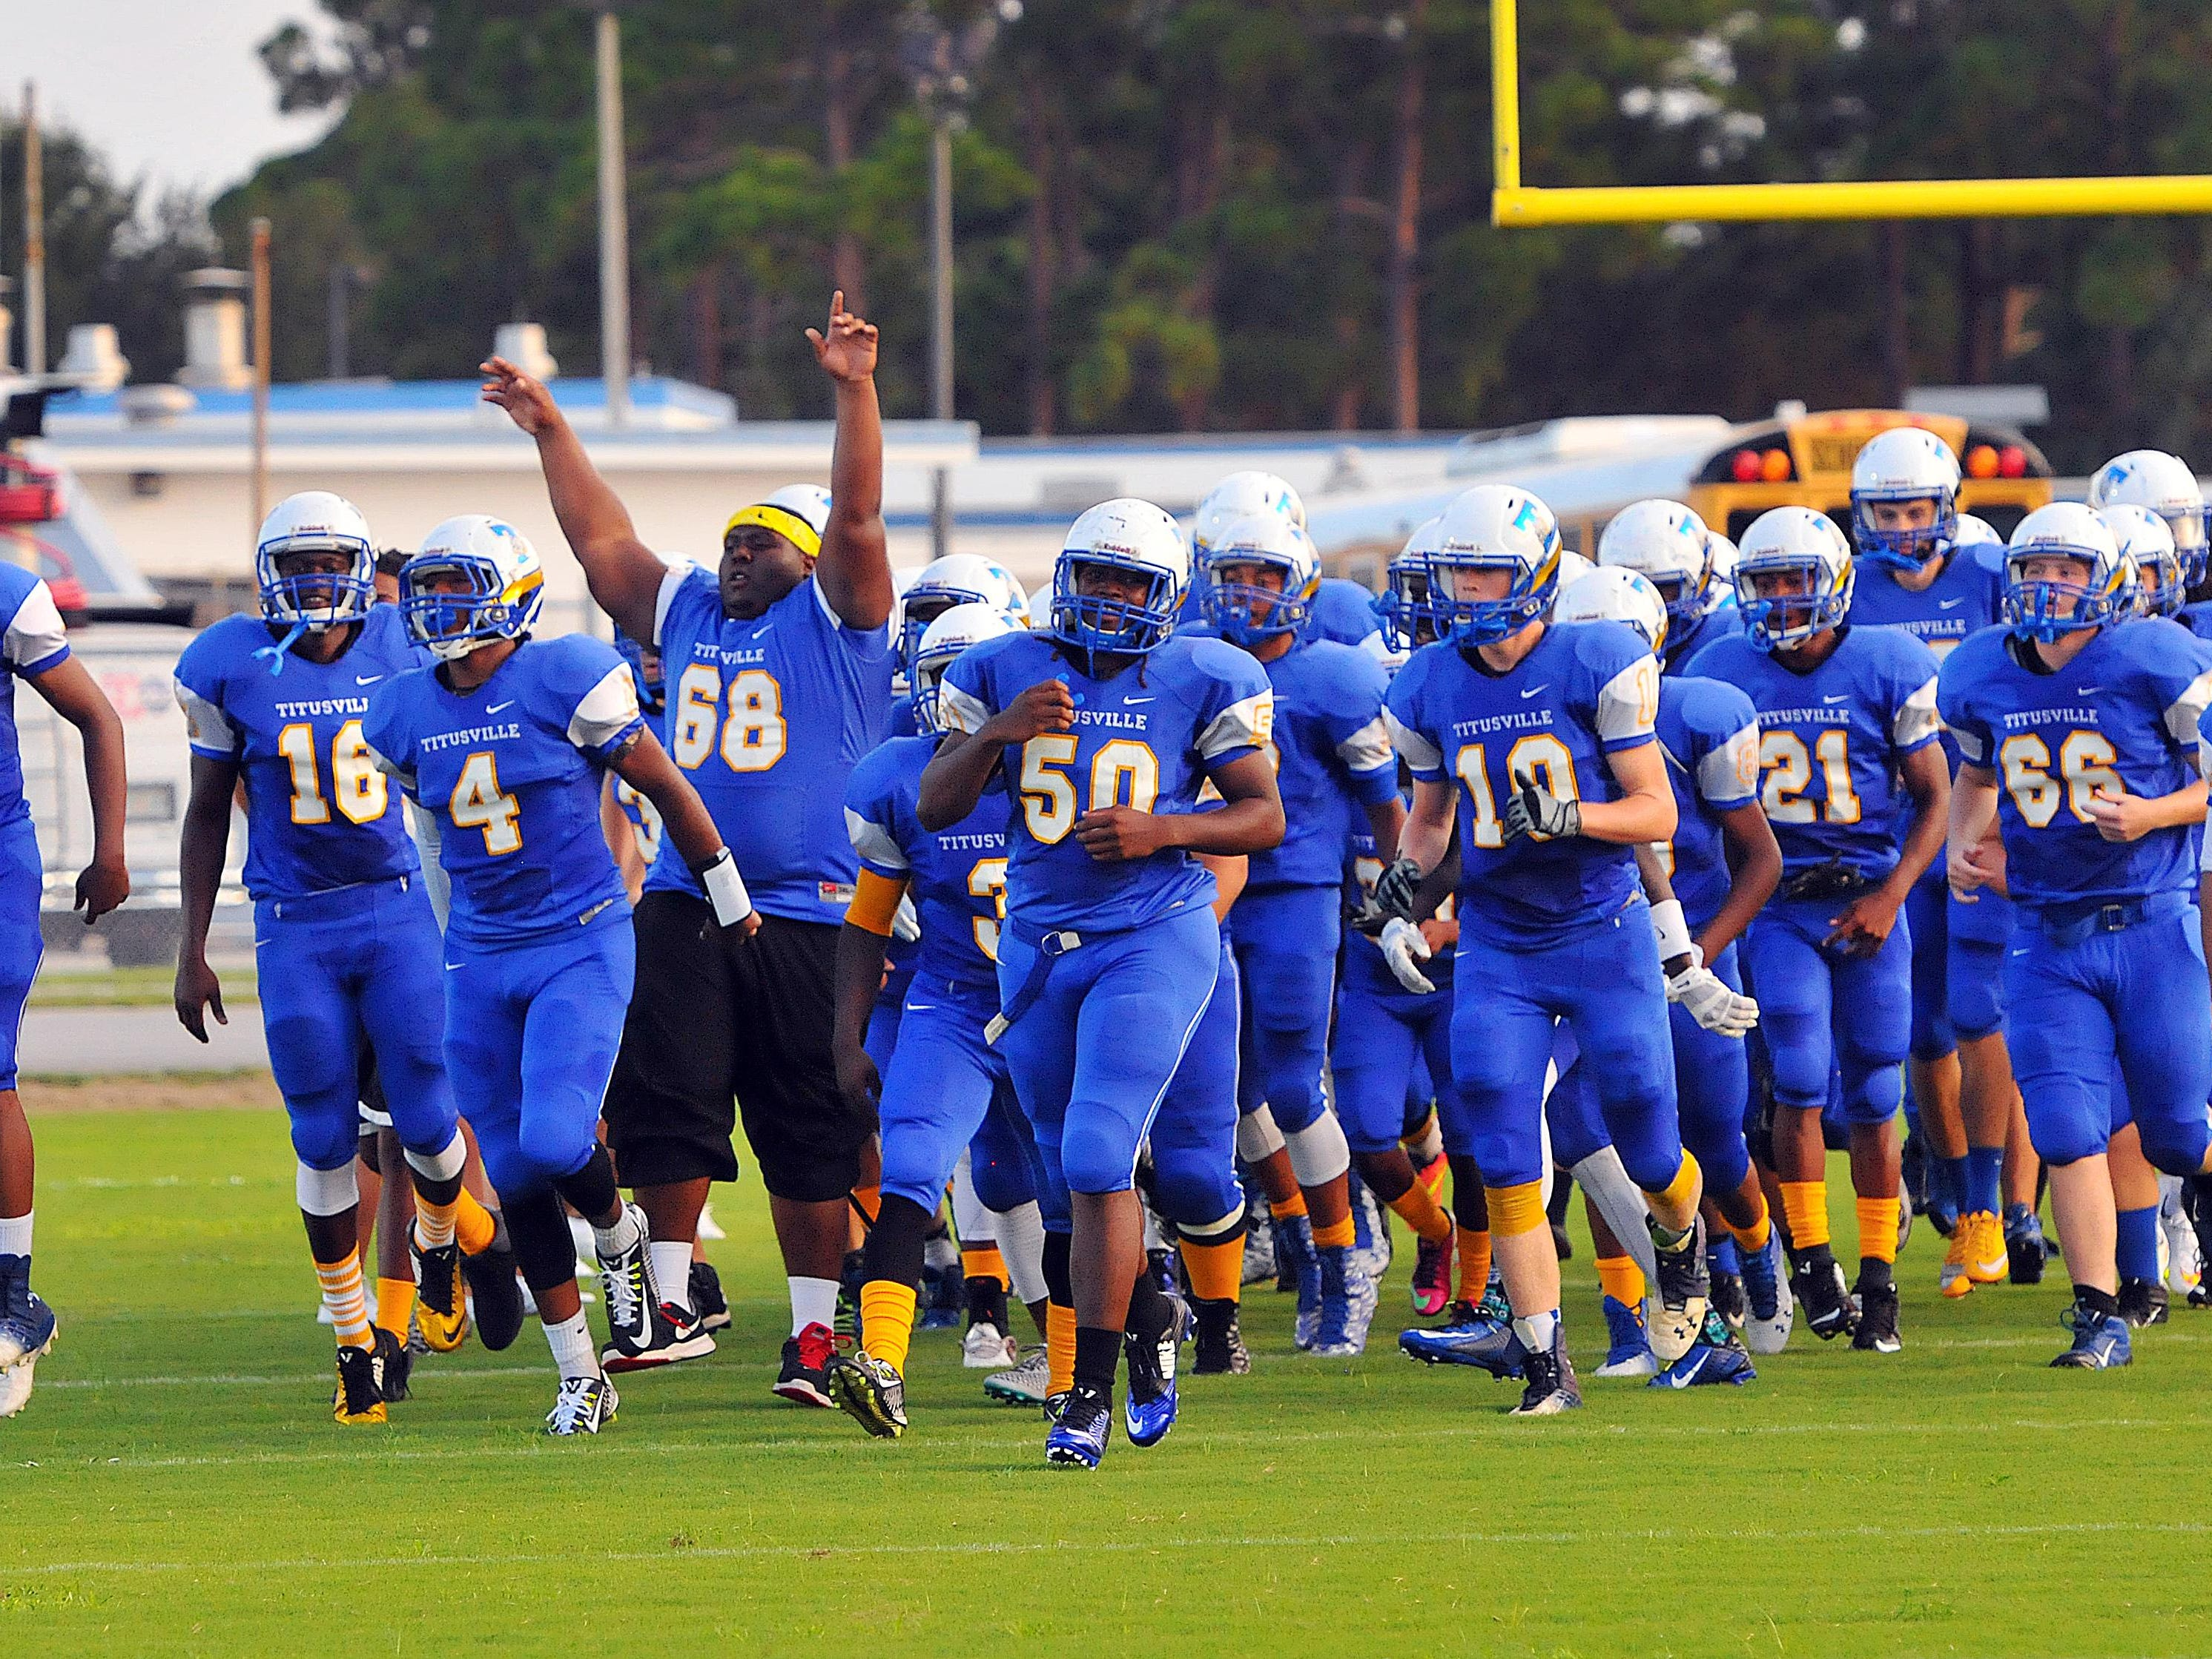 Titusville High held on for a 10-9 win in its opener Friday night.